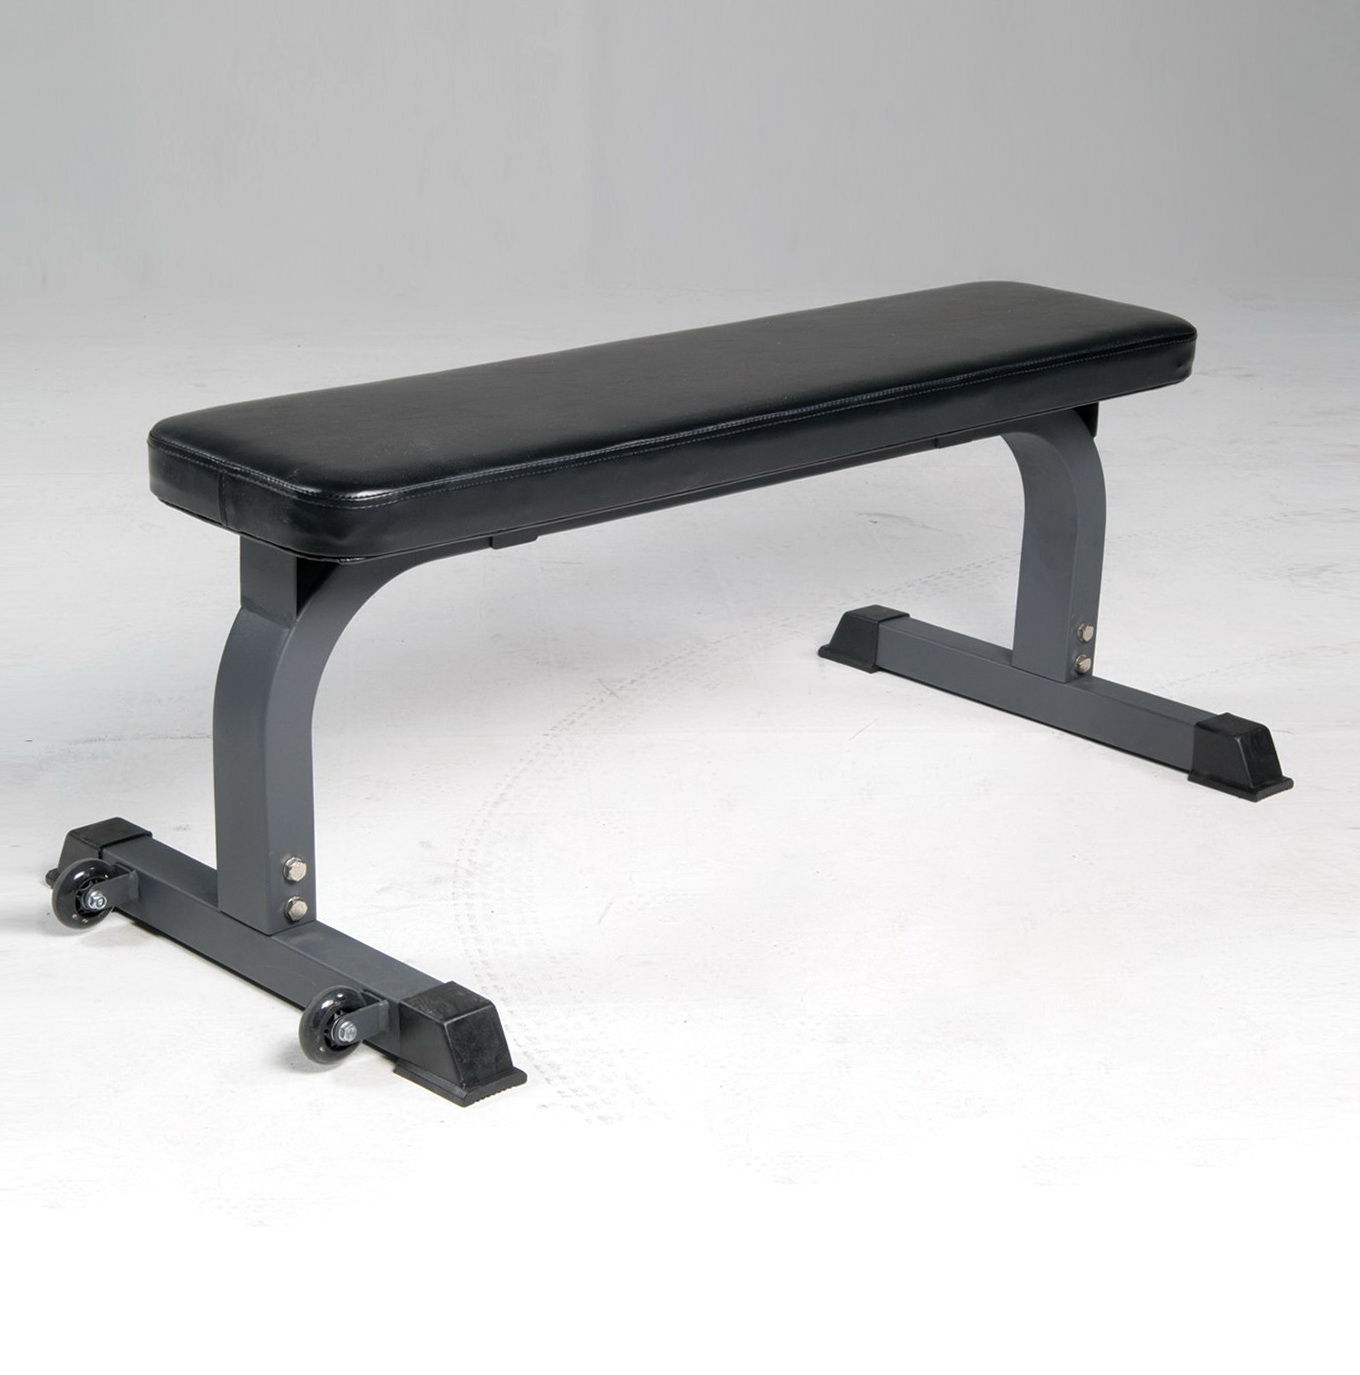 Weight Bench Reviews 2014 Uk